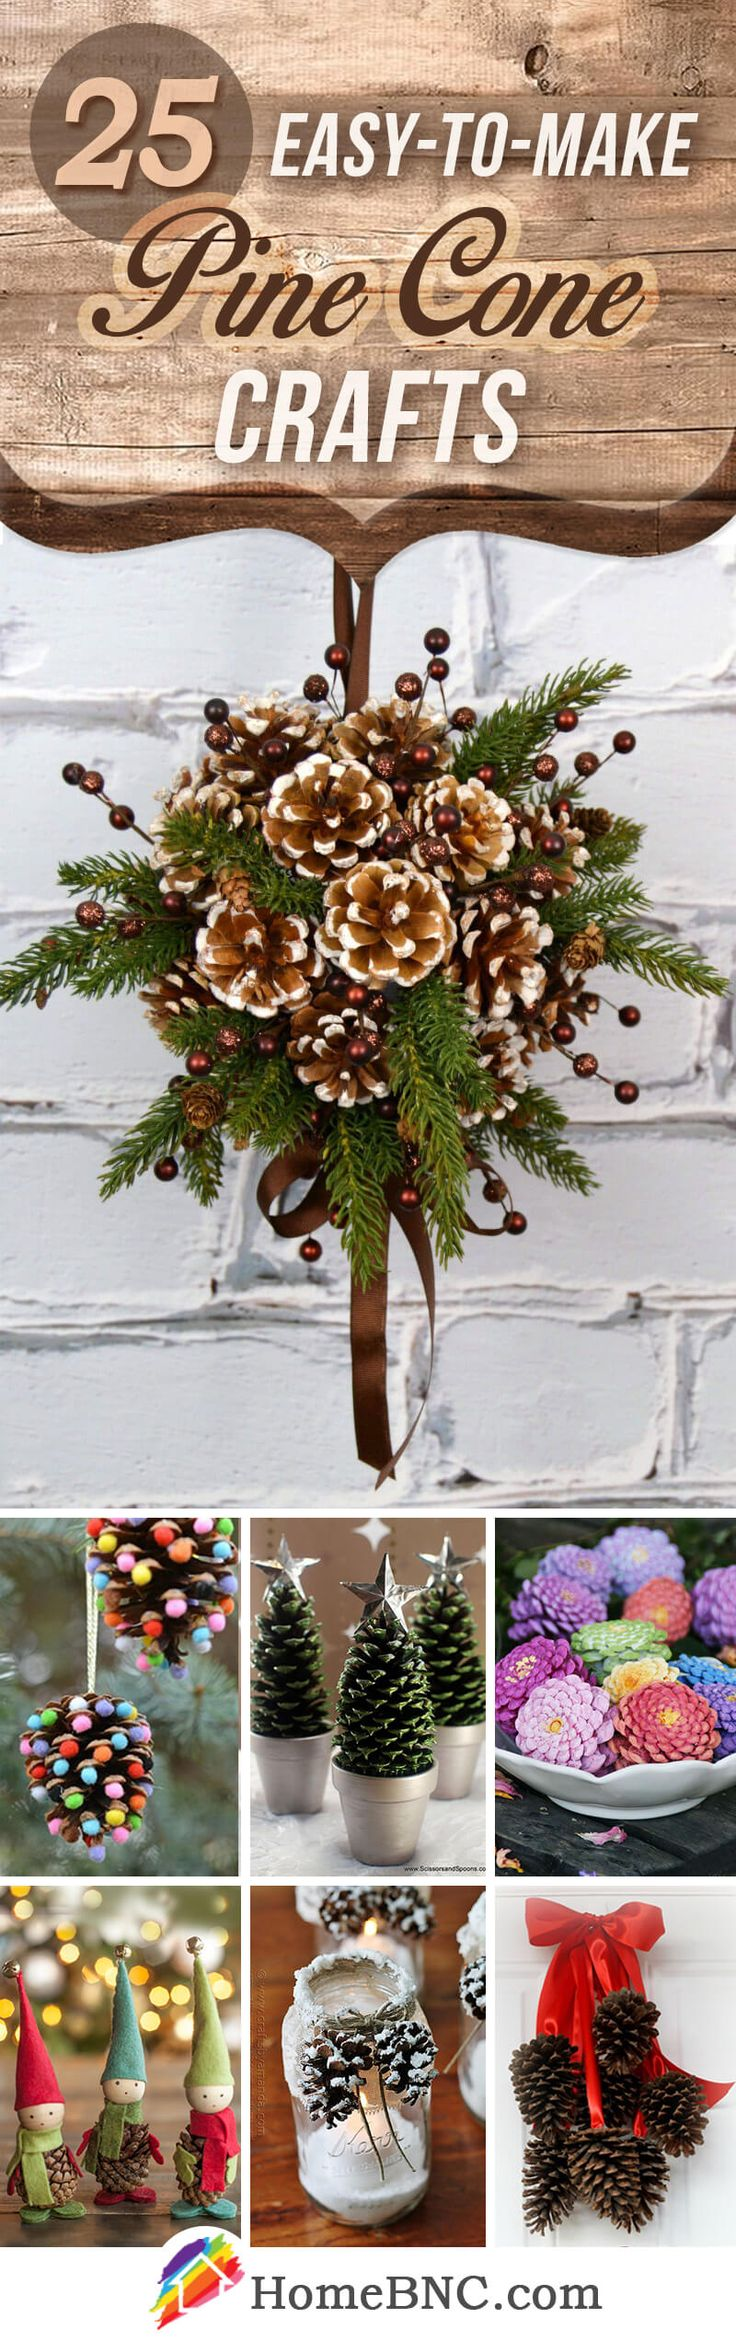 Pine Cone Craft Ideas For Christmas Part - 21: 25 Beautiful DIY Pine Cone Crafts To Enjoy Making The Holiday Decoration